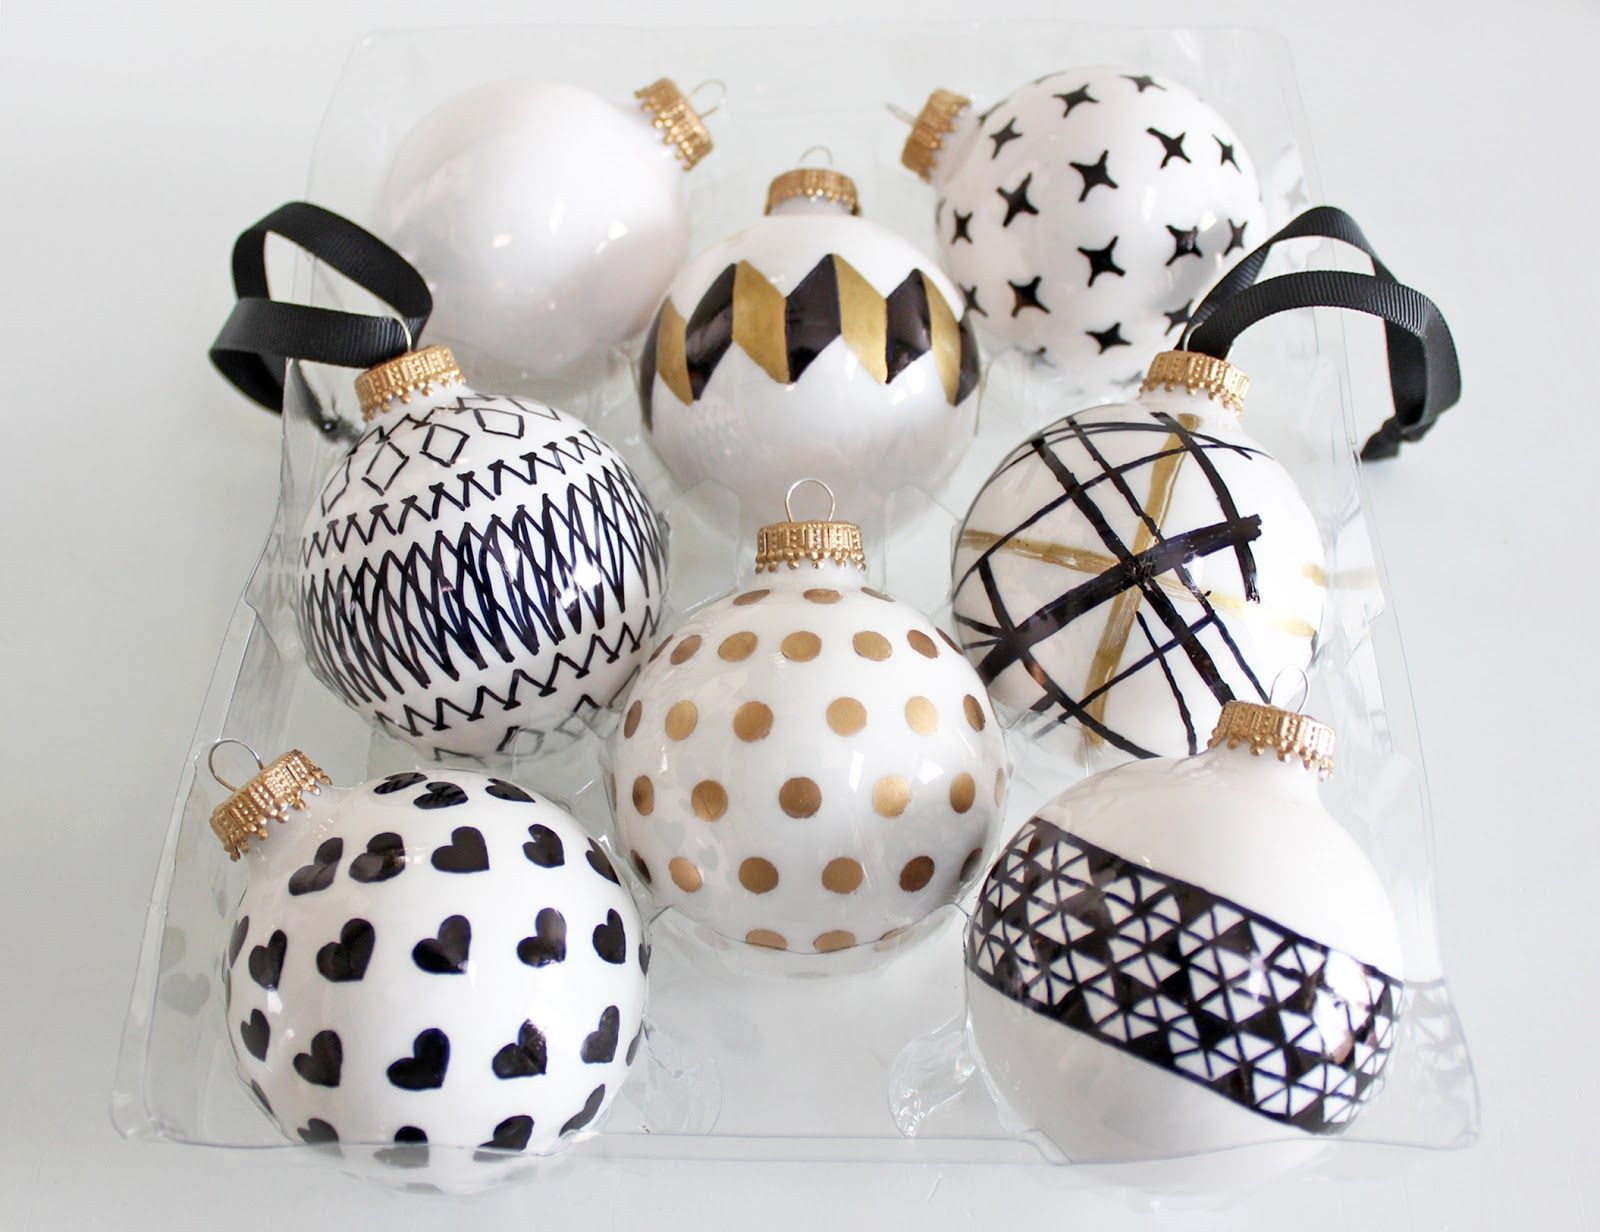 White Christmas ornaments Luxury Am Dolce Vita Diy Handpainted Holiday Ball ornaments Diy Of Attractive 44 Images White Christmas ornaments